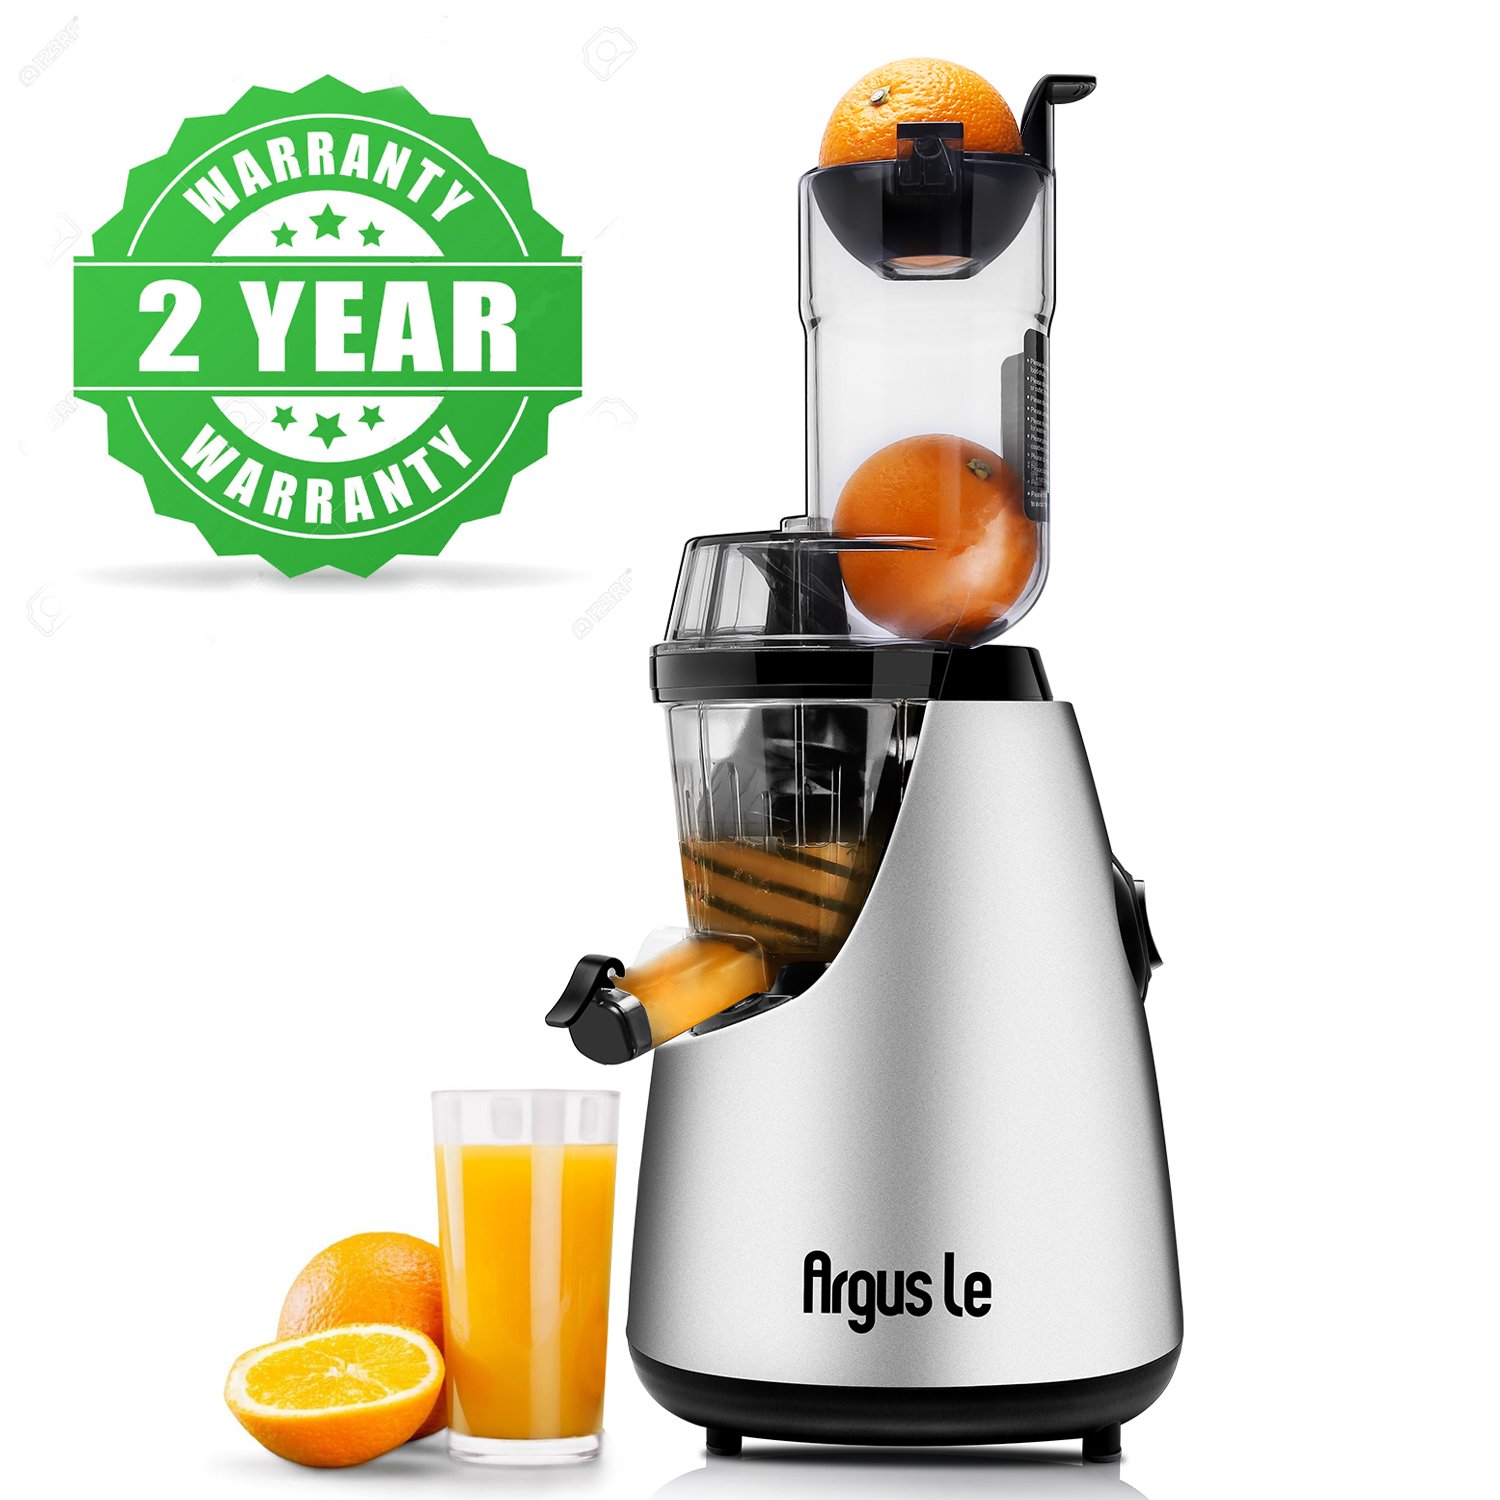 Argus Le Masticating Juicer, Whole Slow Juicer, 3''inches(75MM) Wide Feed Chute, Easy Cleaning Auger, Energy Saving 150W DC Motor, Fruit and Vegetable Juice Extractor with Two Filters and Recipe Book